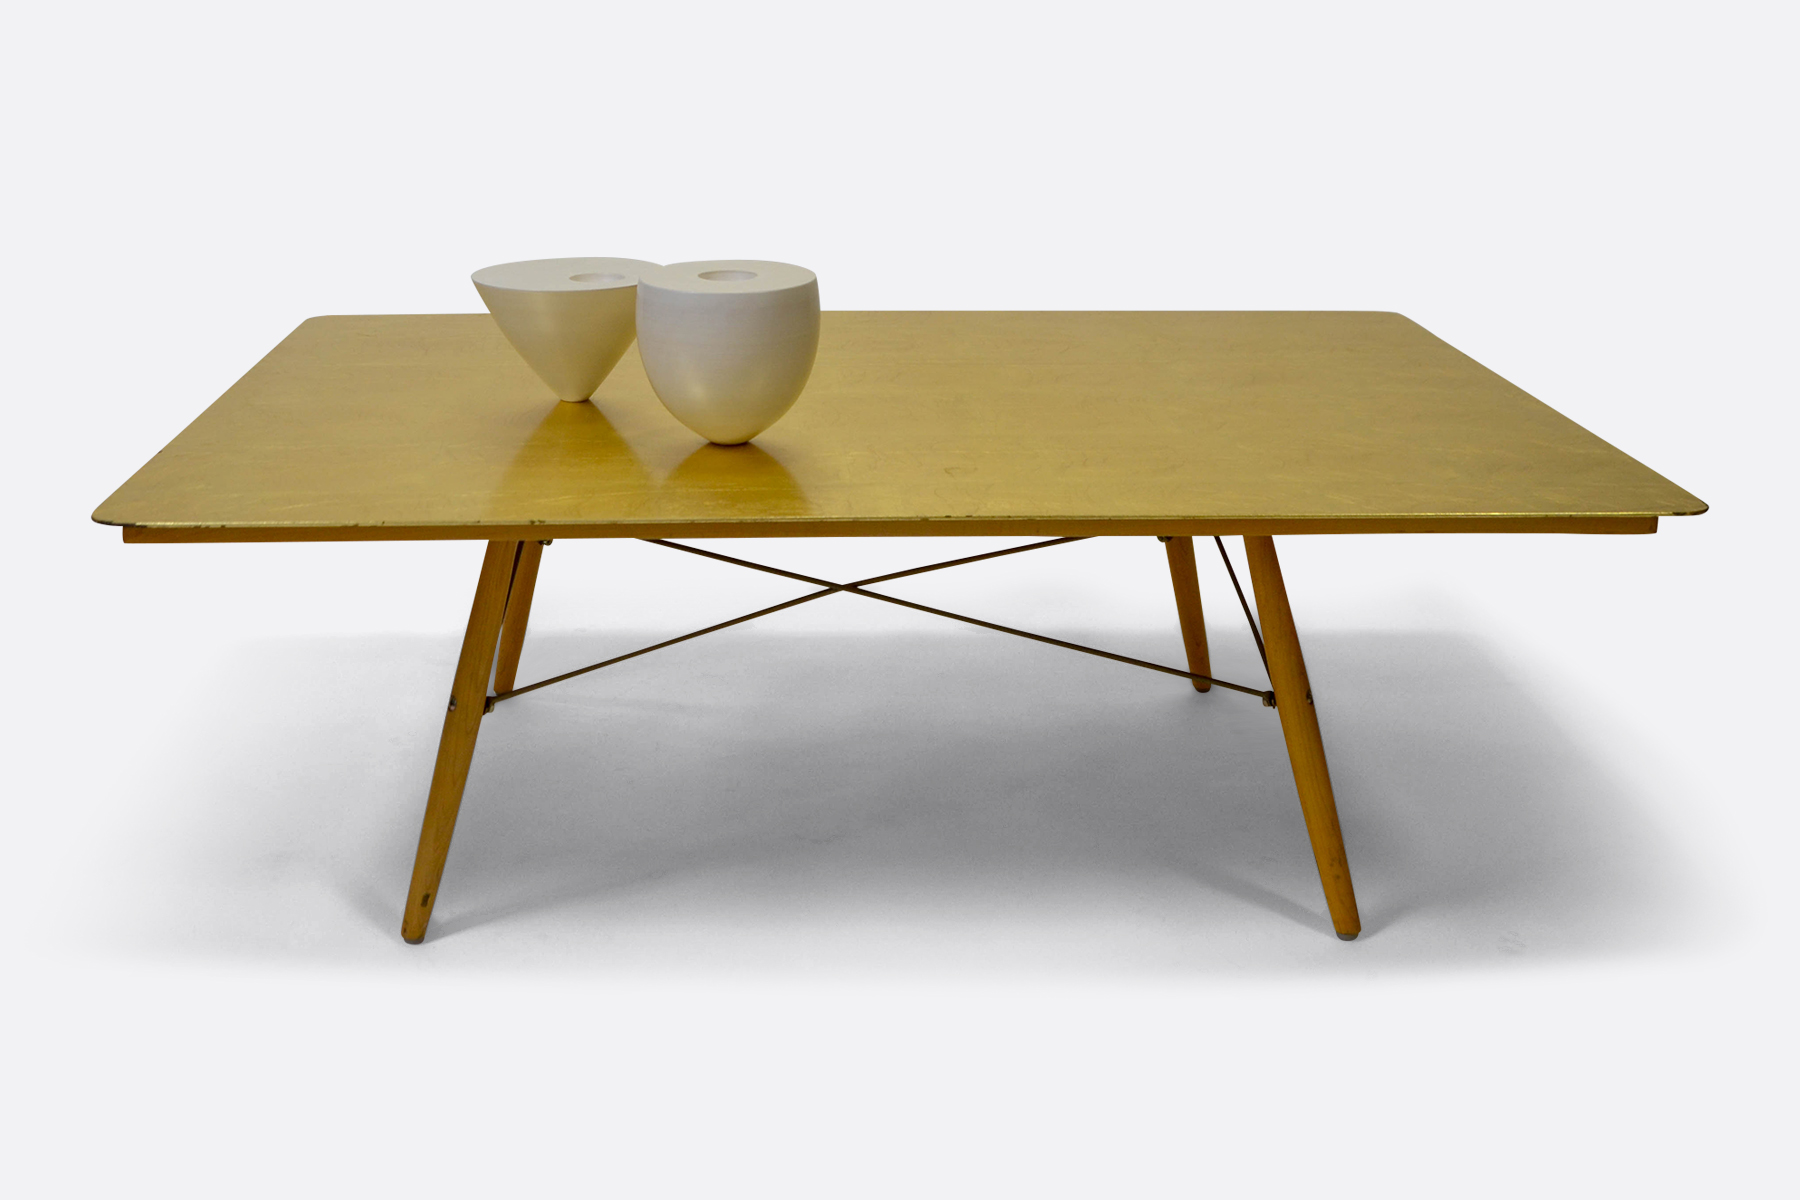 Gold-leaf-table-Jan van Hulzen